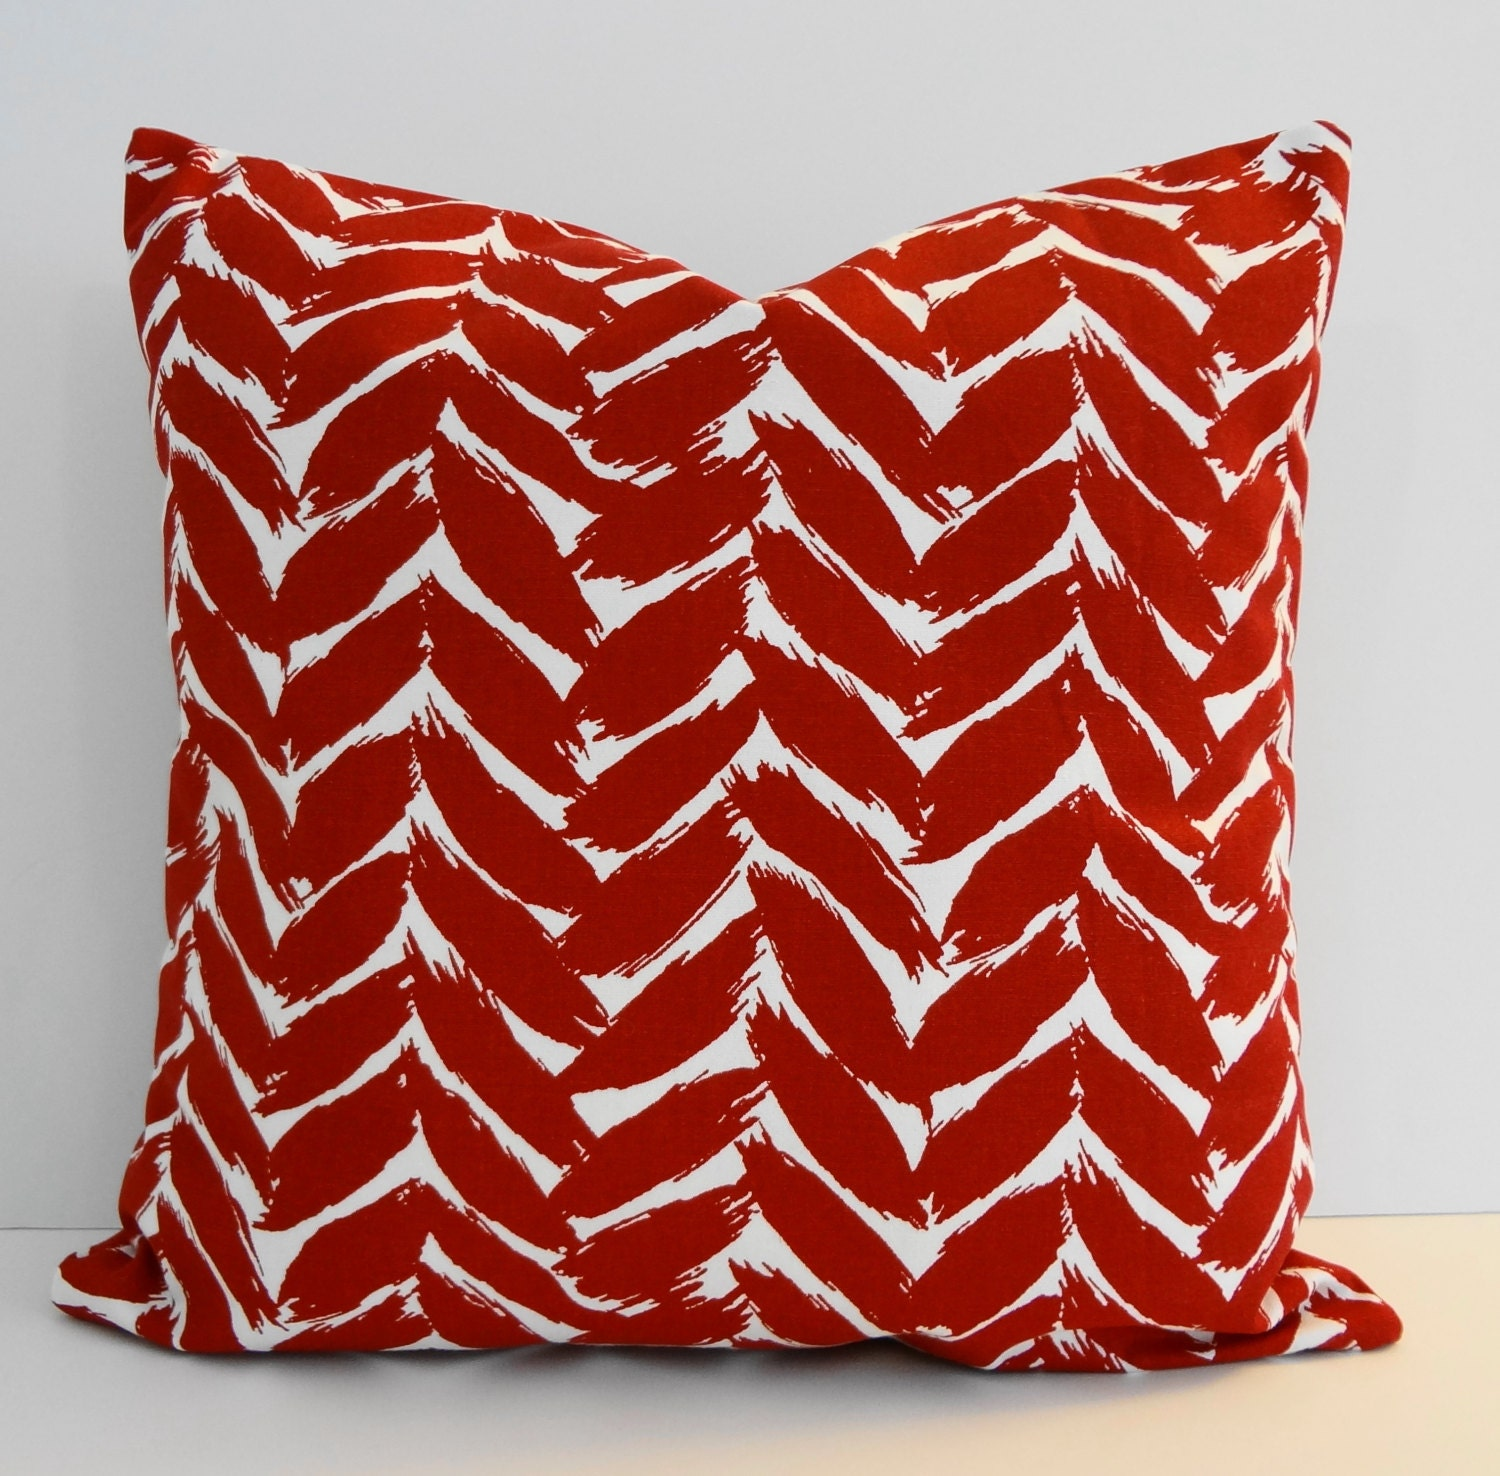 Fabric For Throw Pillow Covers : Designer Pillow Cover Covington Fabrics Crimson Throw Pillow